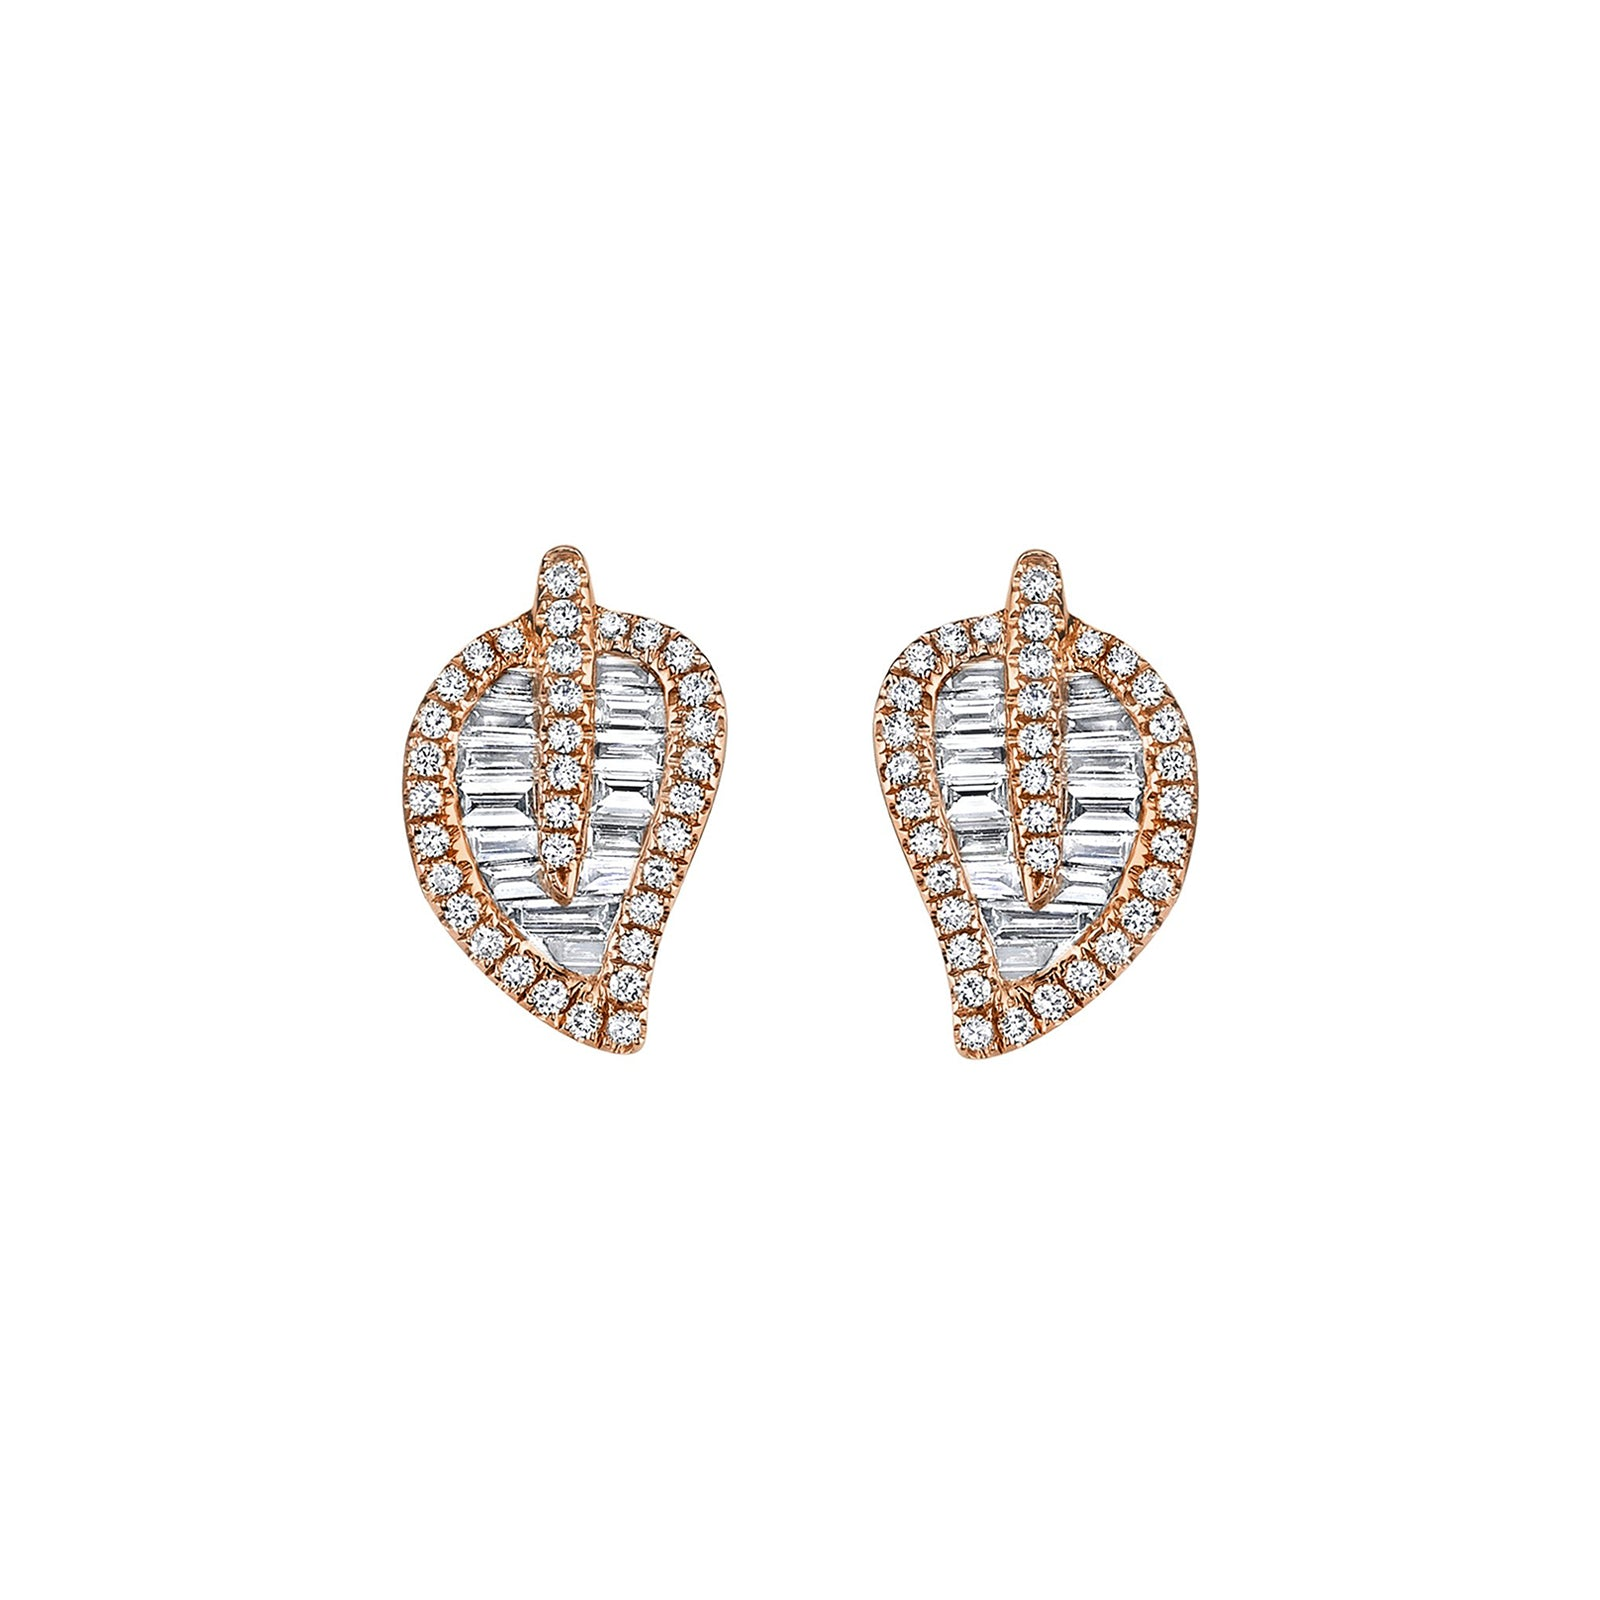 Leaf Studs - Small by Anita Ko - Earrings - Broken English Jewelry